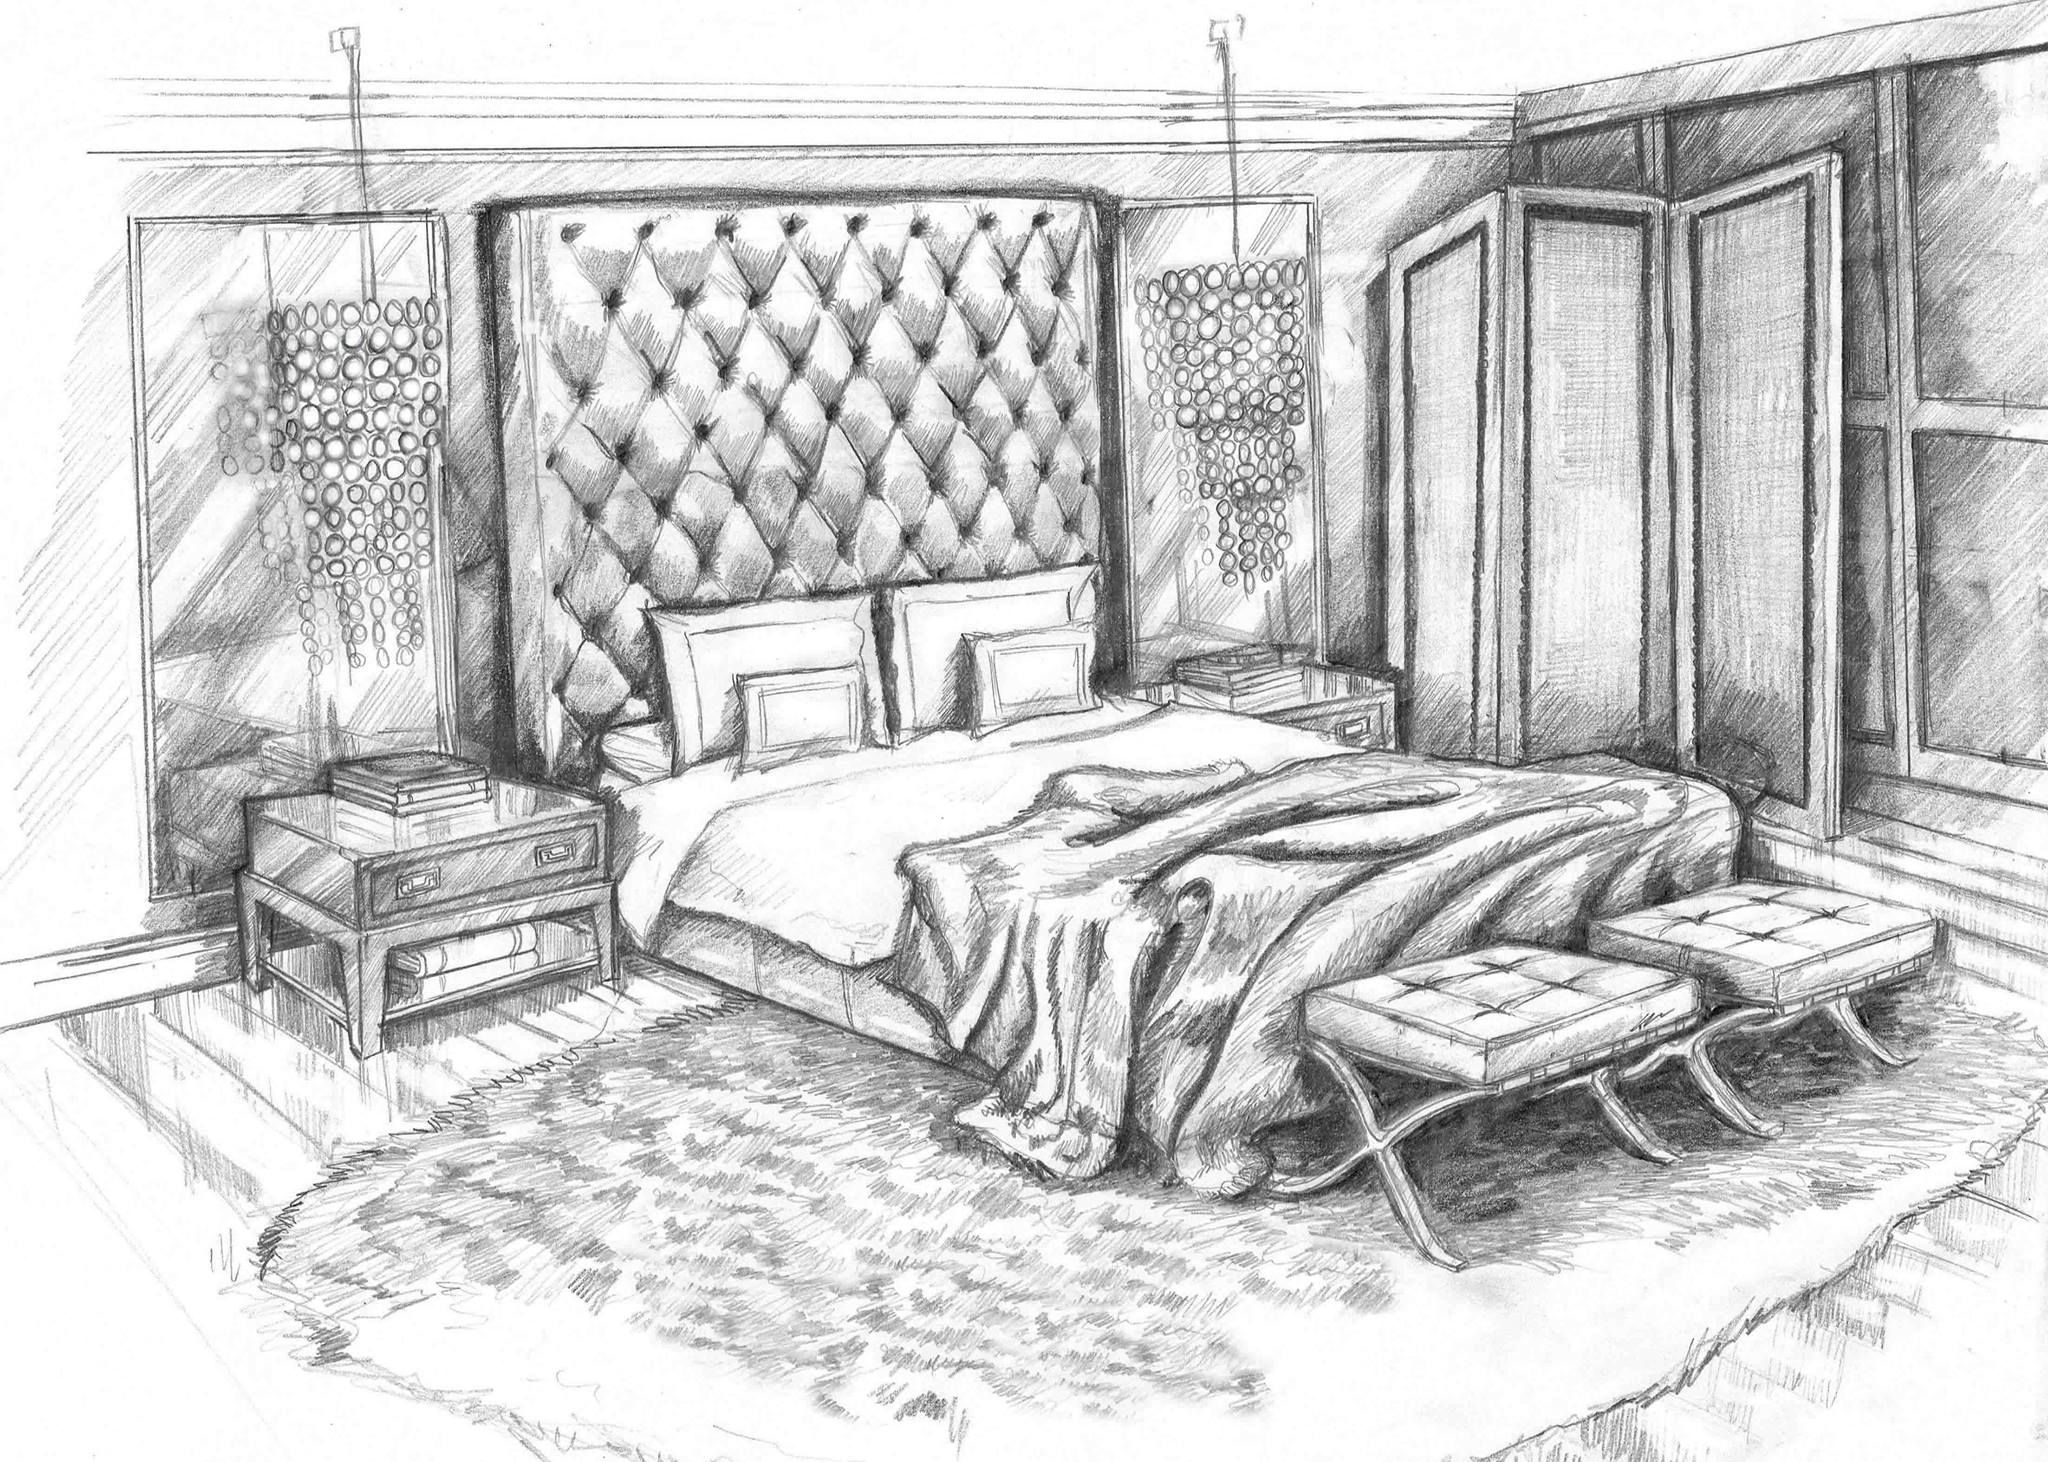 Master bedroom drawing - Pencil Sketch Art Master Bedroom Concept Design Visual By Lorraine Warwick Ellis